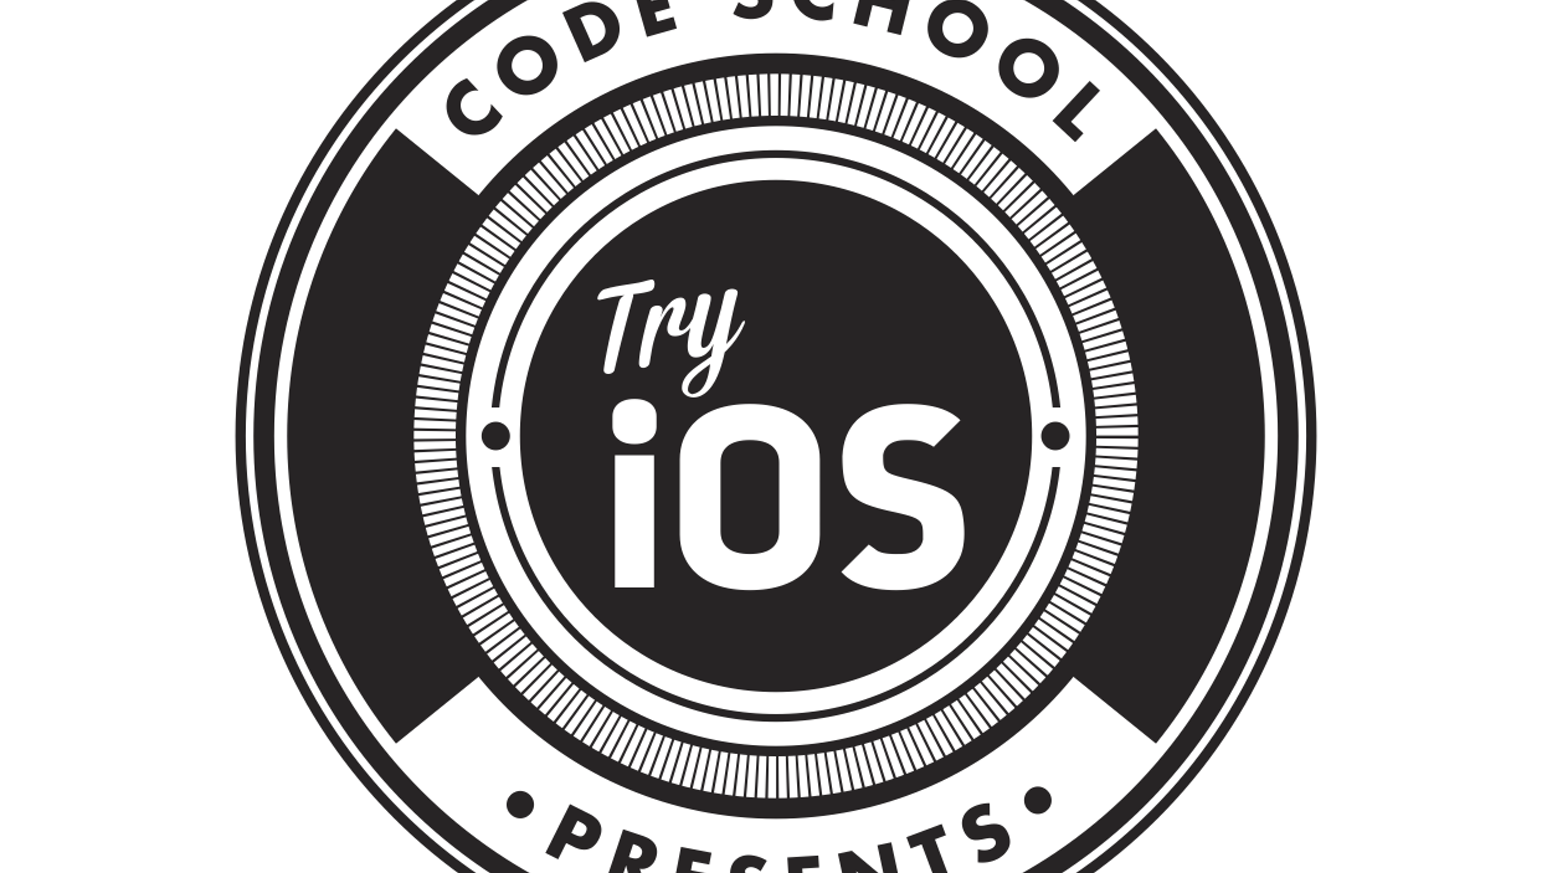 Try iOS: iPhone App Development Course by Eric Allam » Free